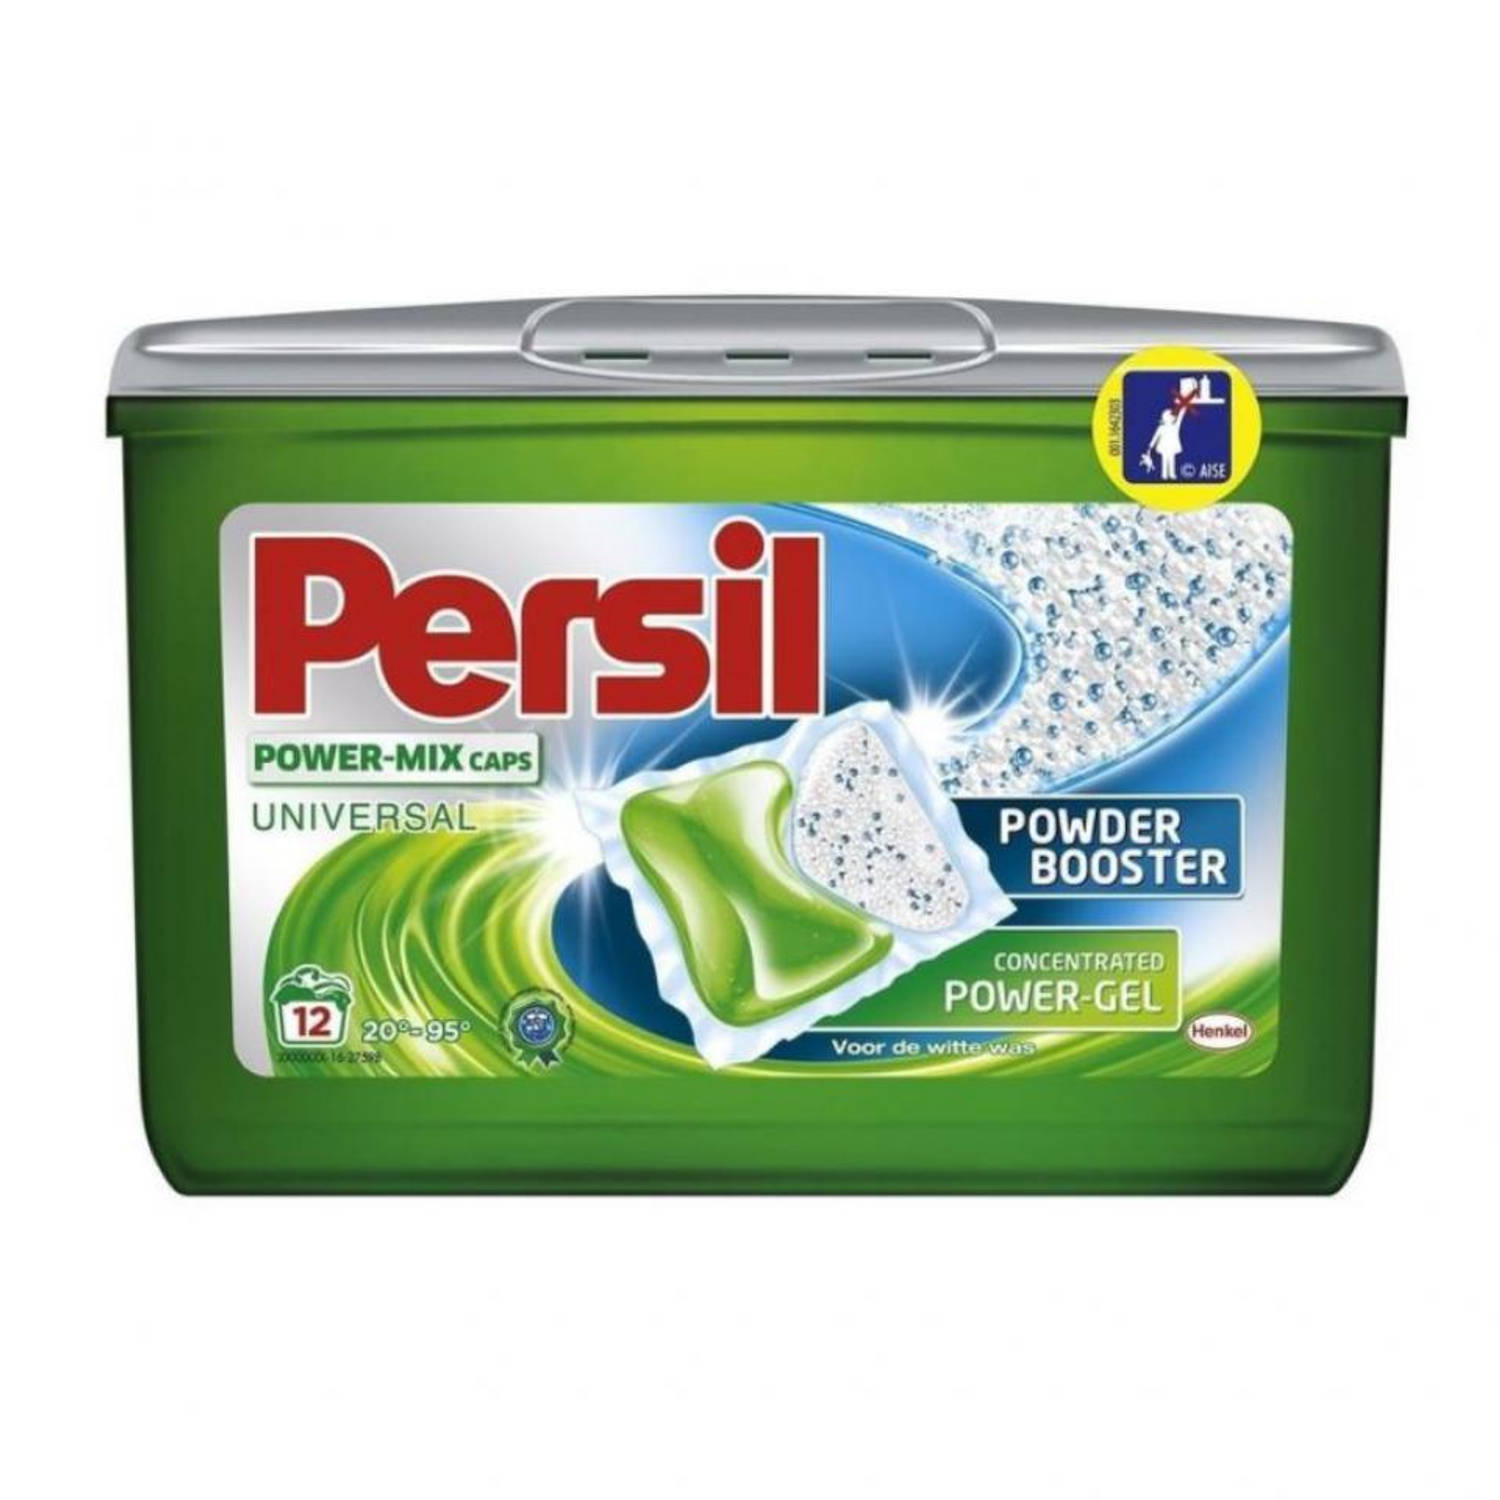 Persil Power Mix Caps wasmiddel